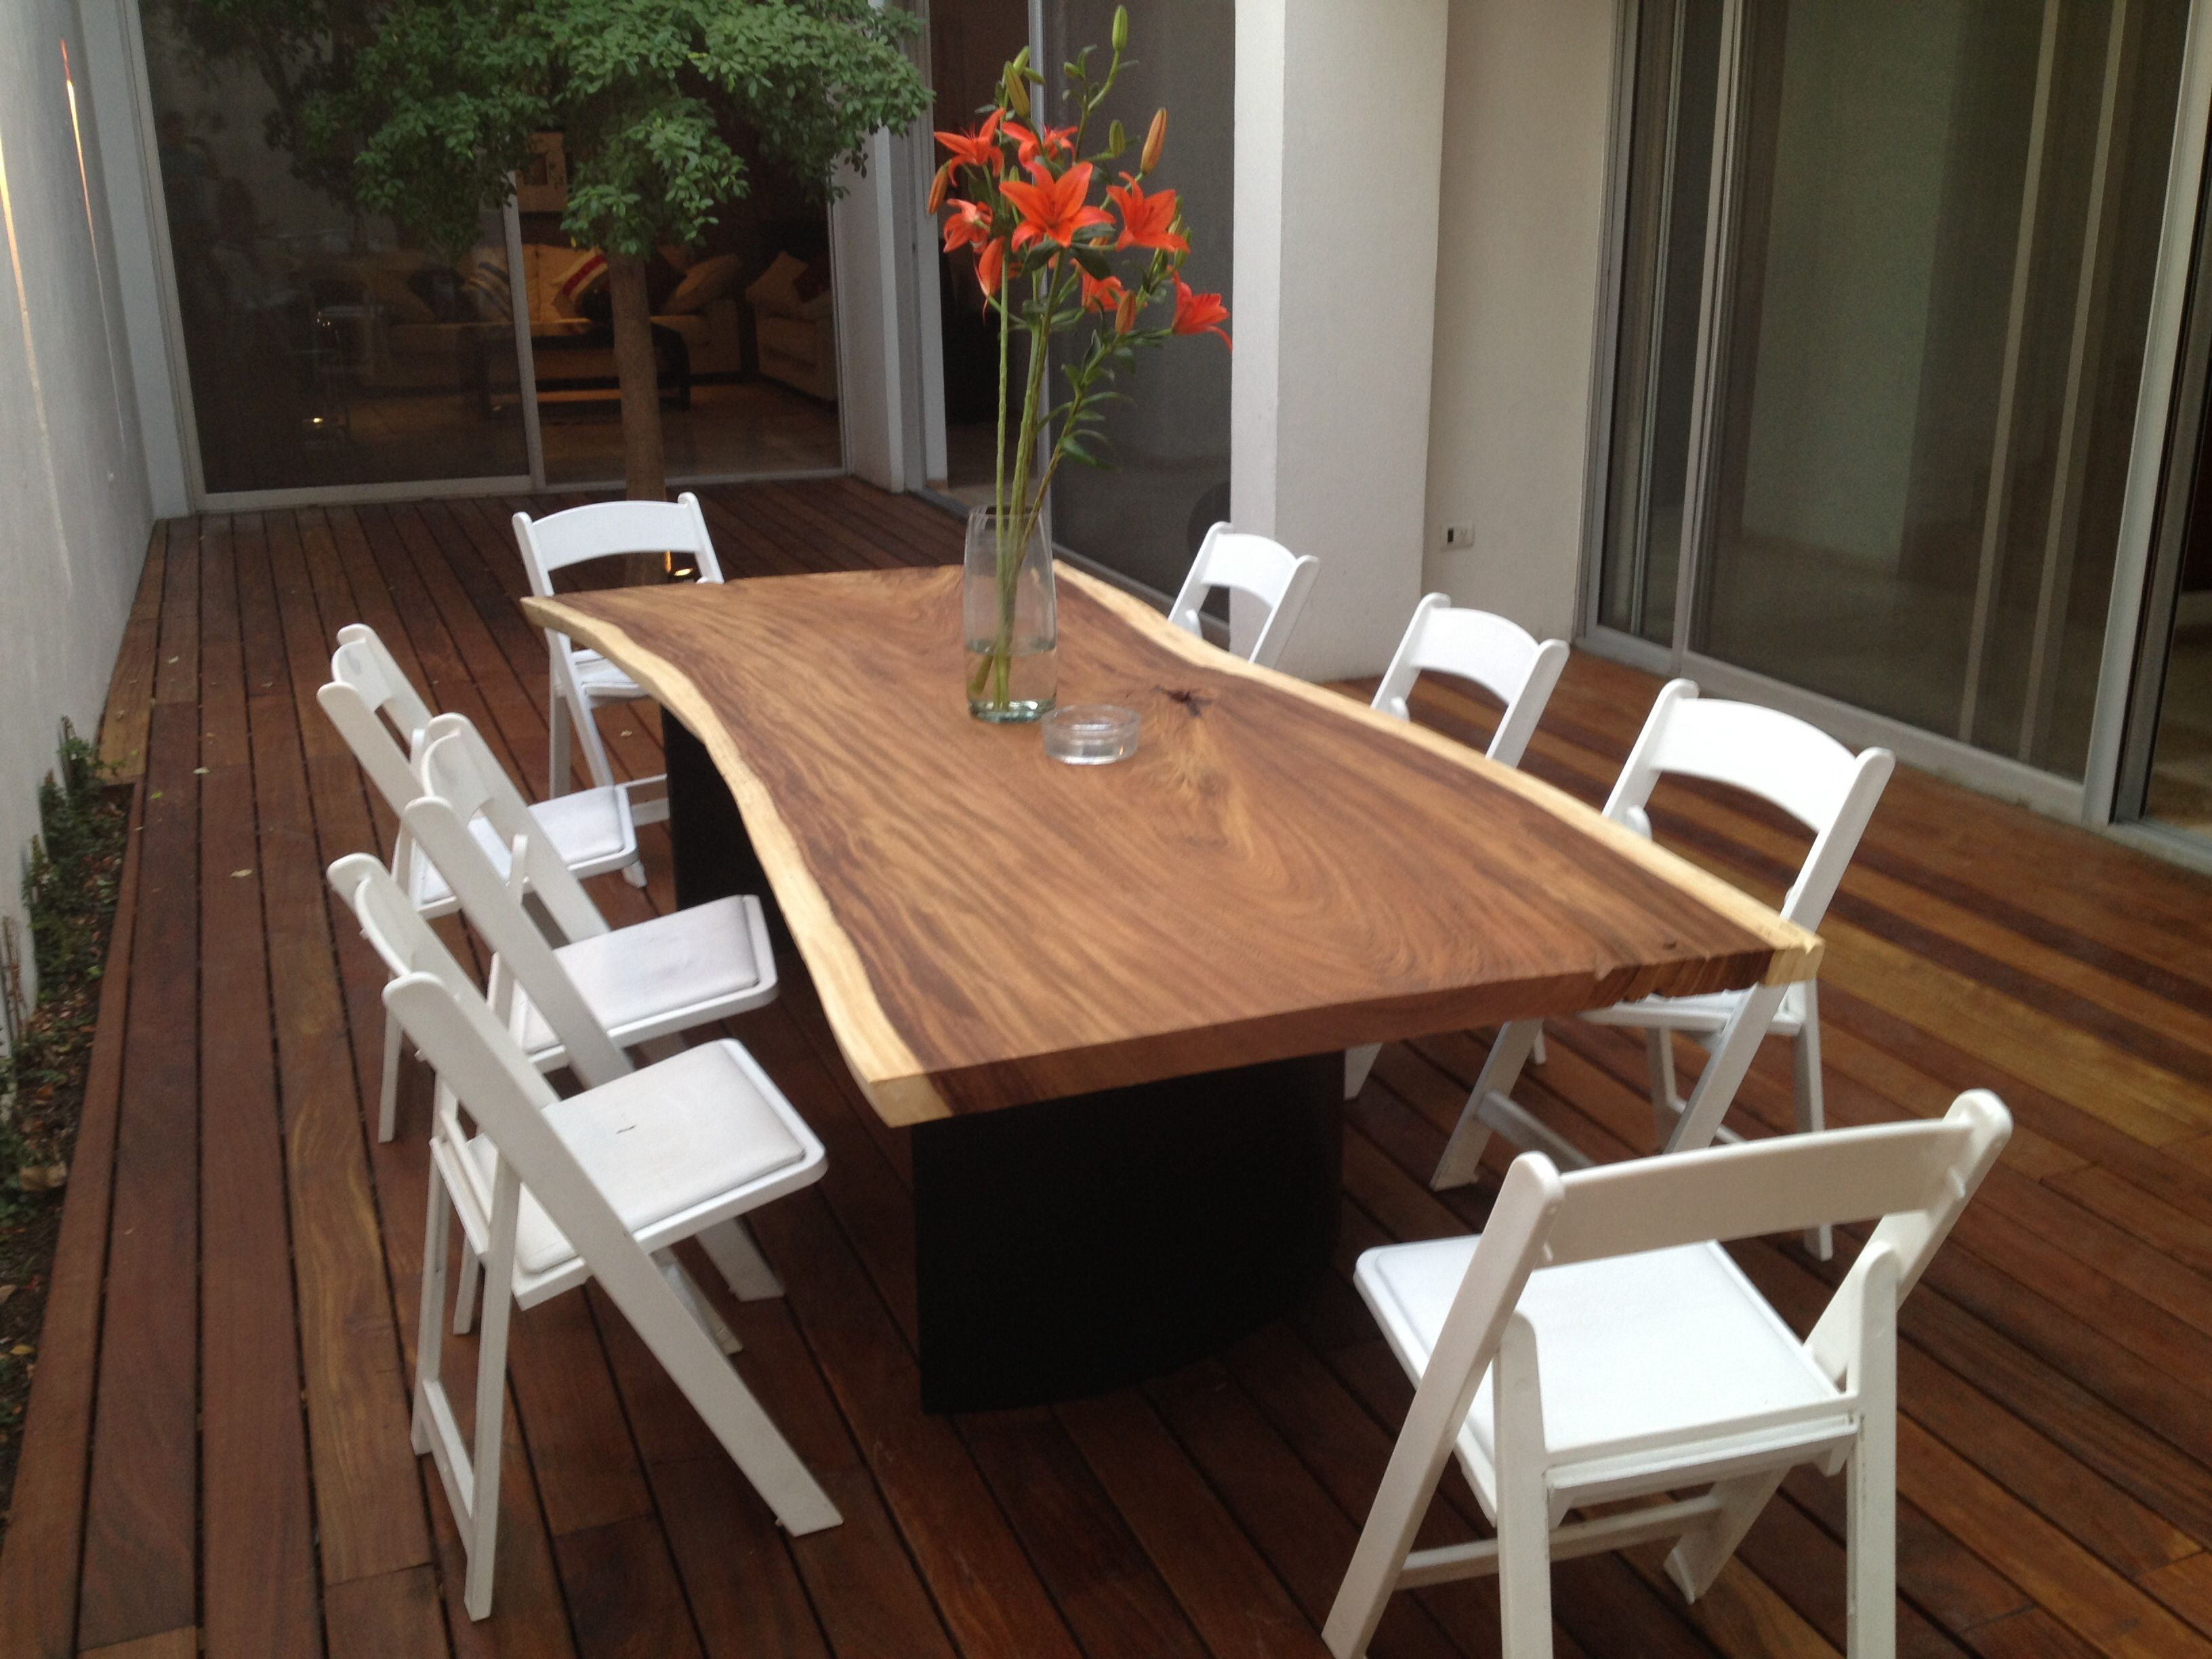 Terrace Deck And Parota Dining Table